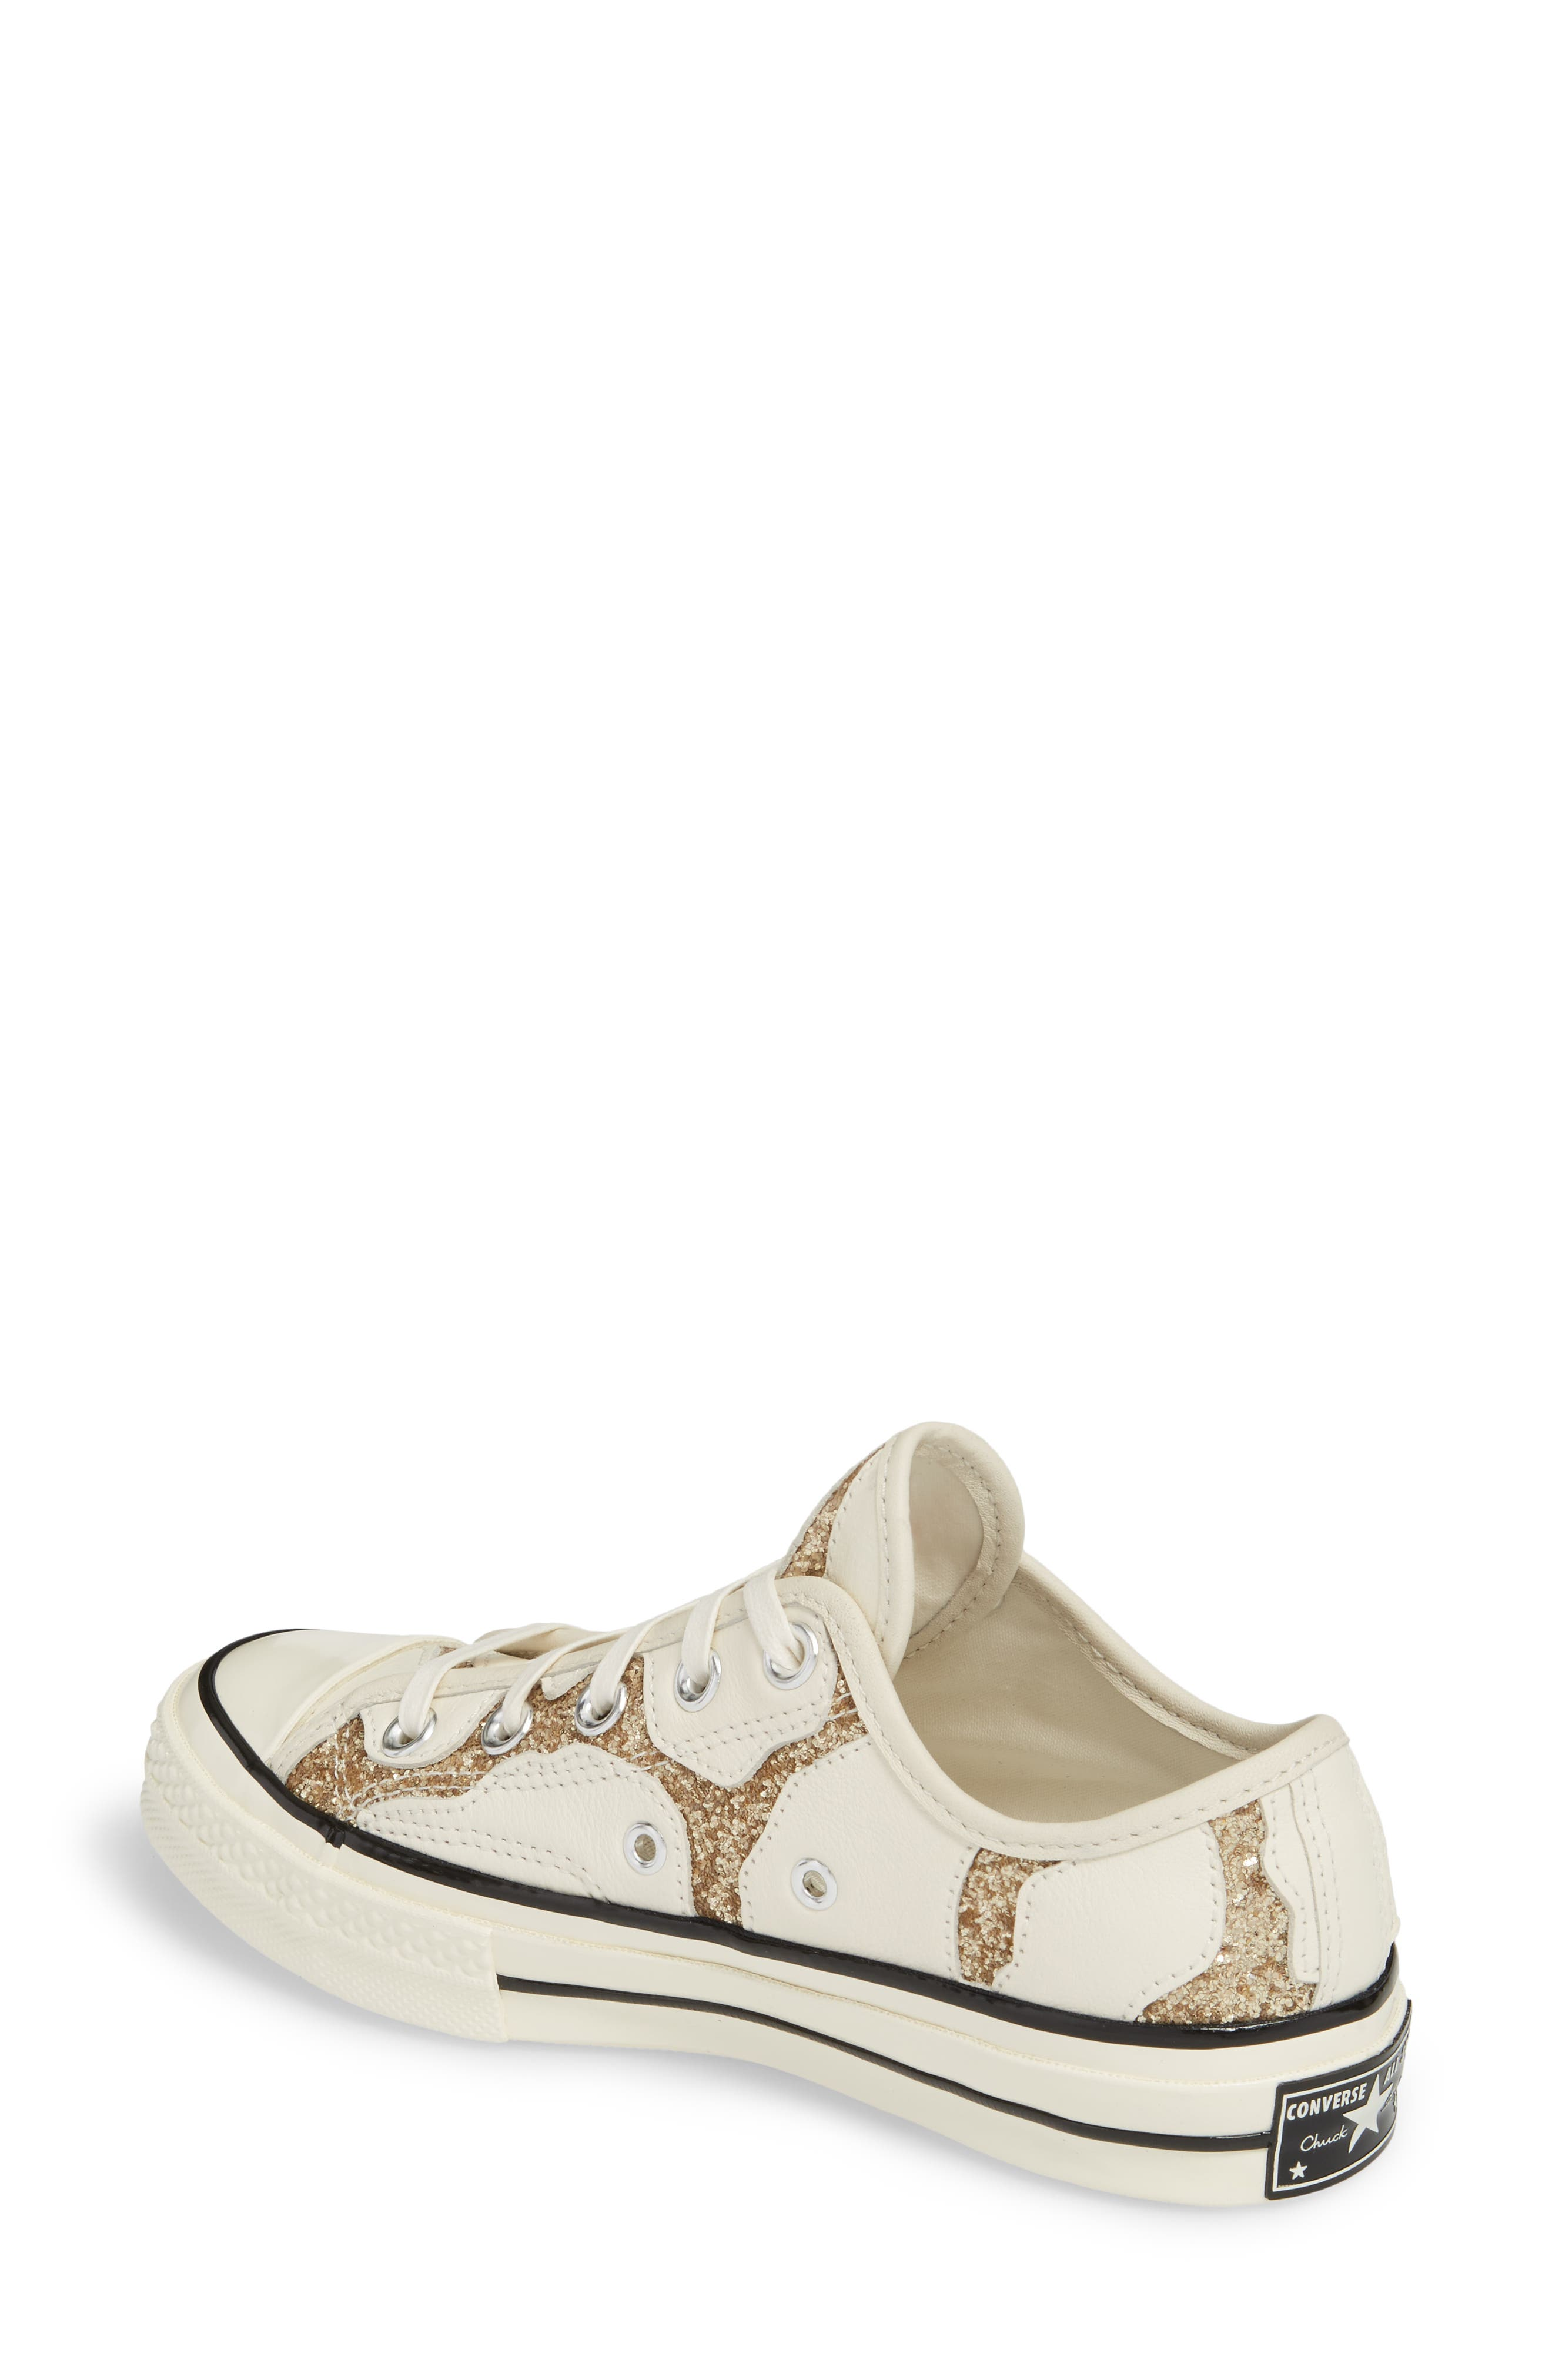 Alternate Image 2  - Converse Chuck Taylor® All Star® Animal Glitter Low Top Sneaker (Women)